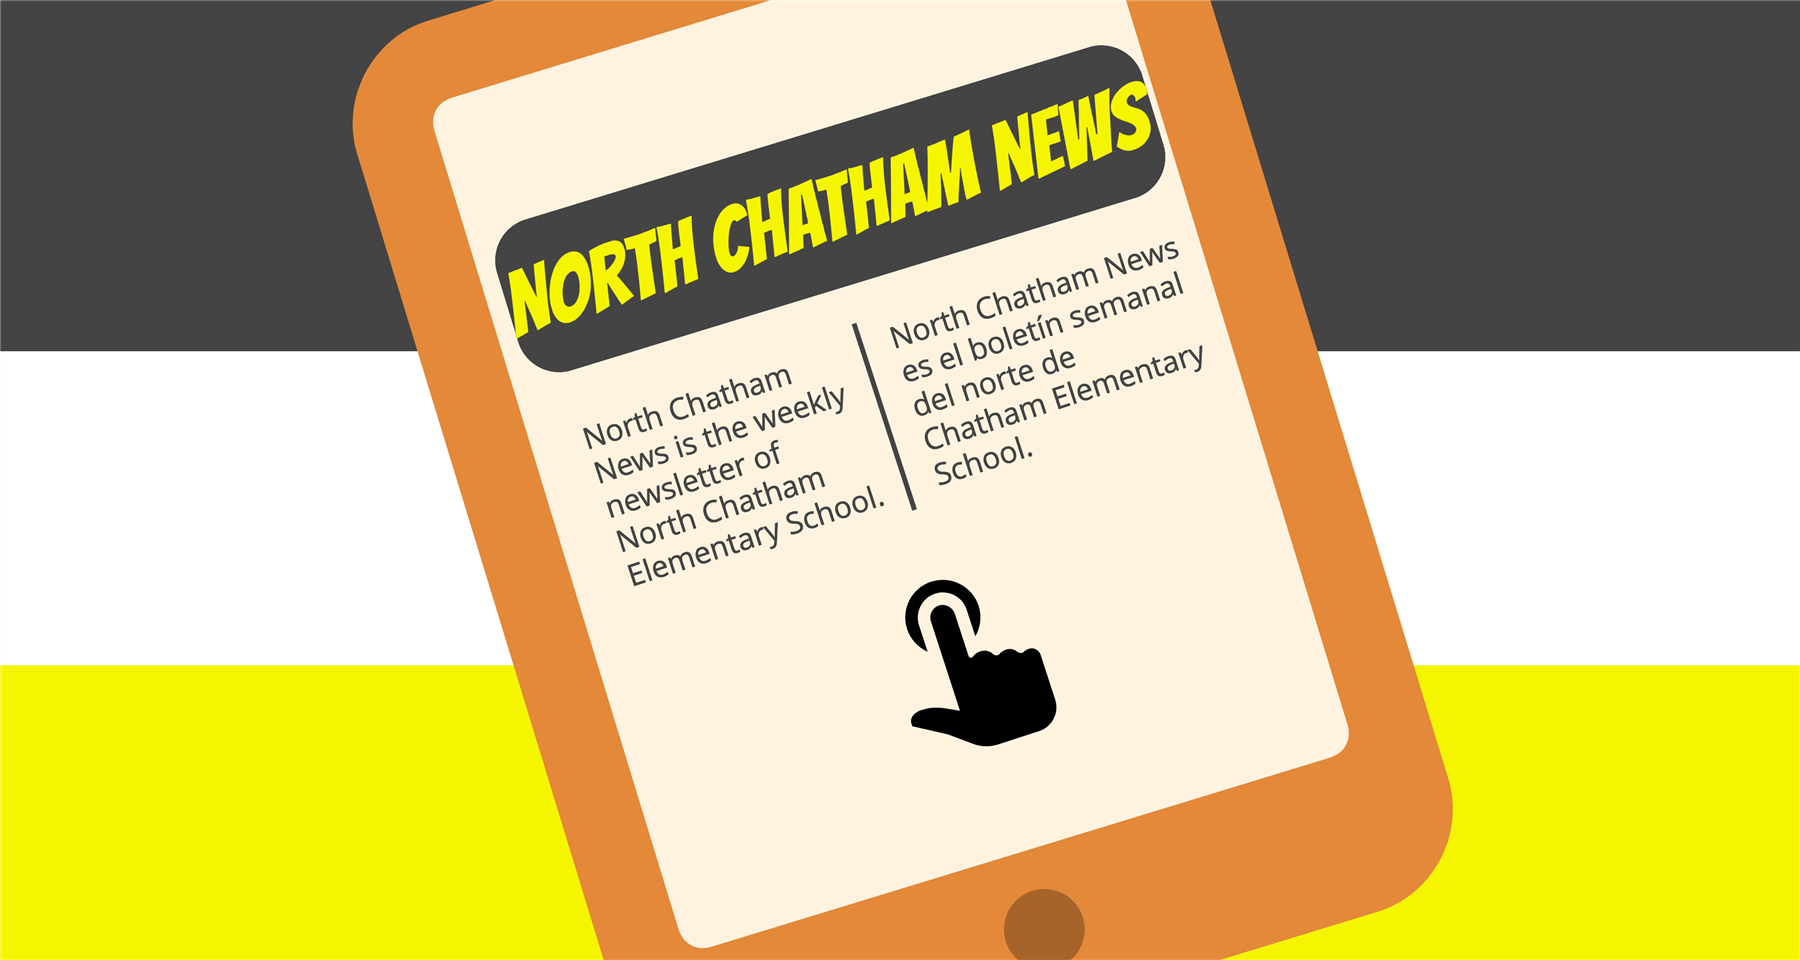 Click to read the North Chatham News.